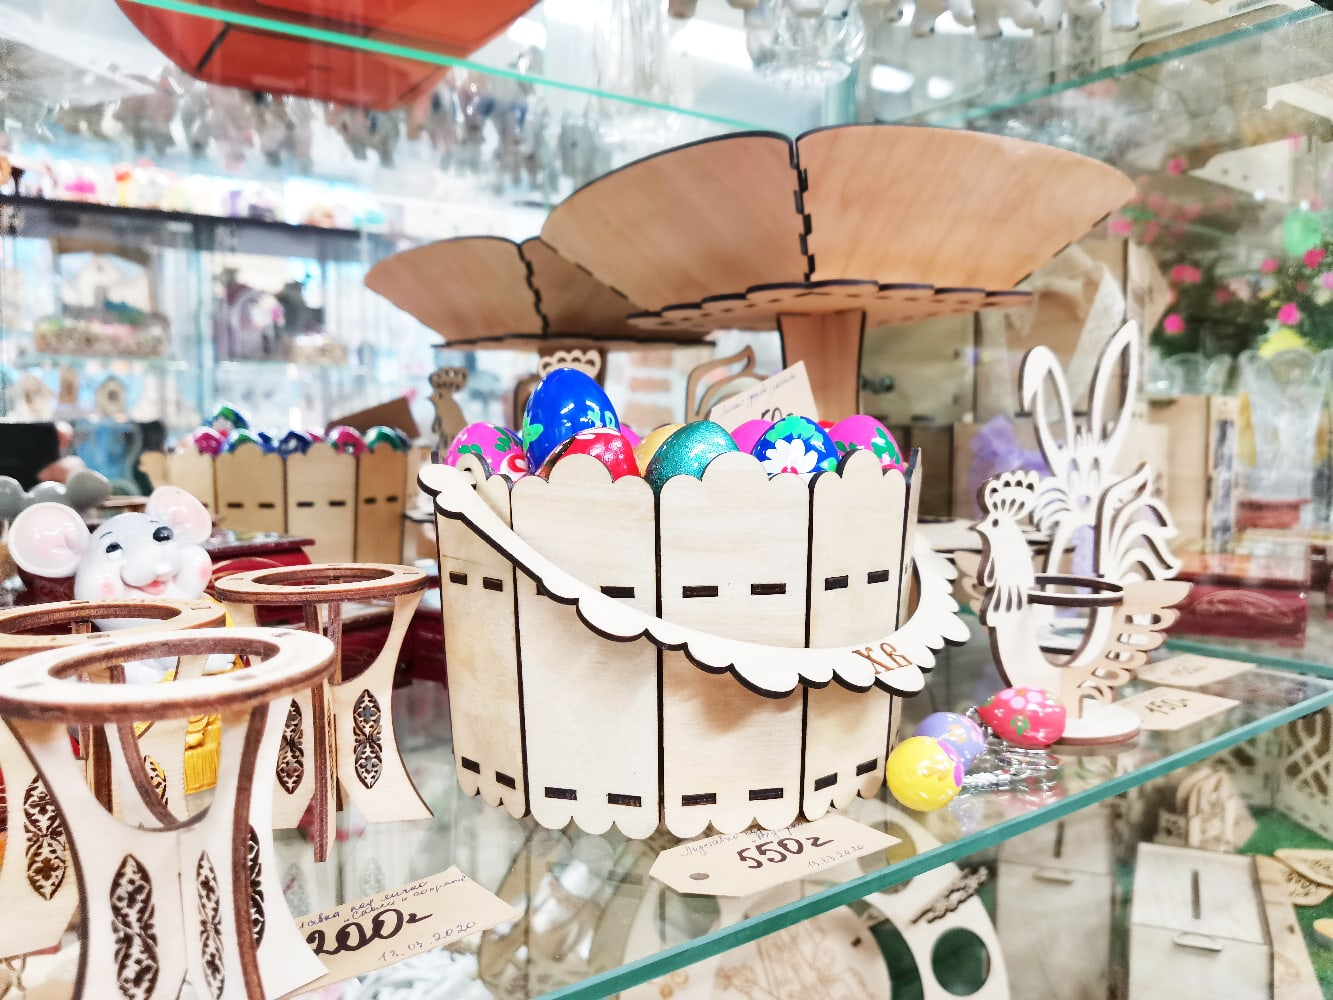 Laser Cut Wooden Easter Decorations Free Vector